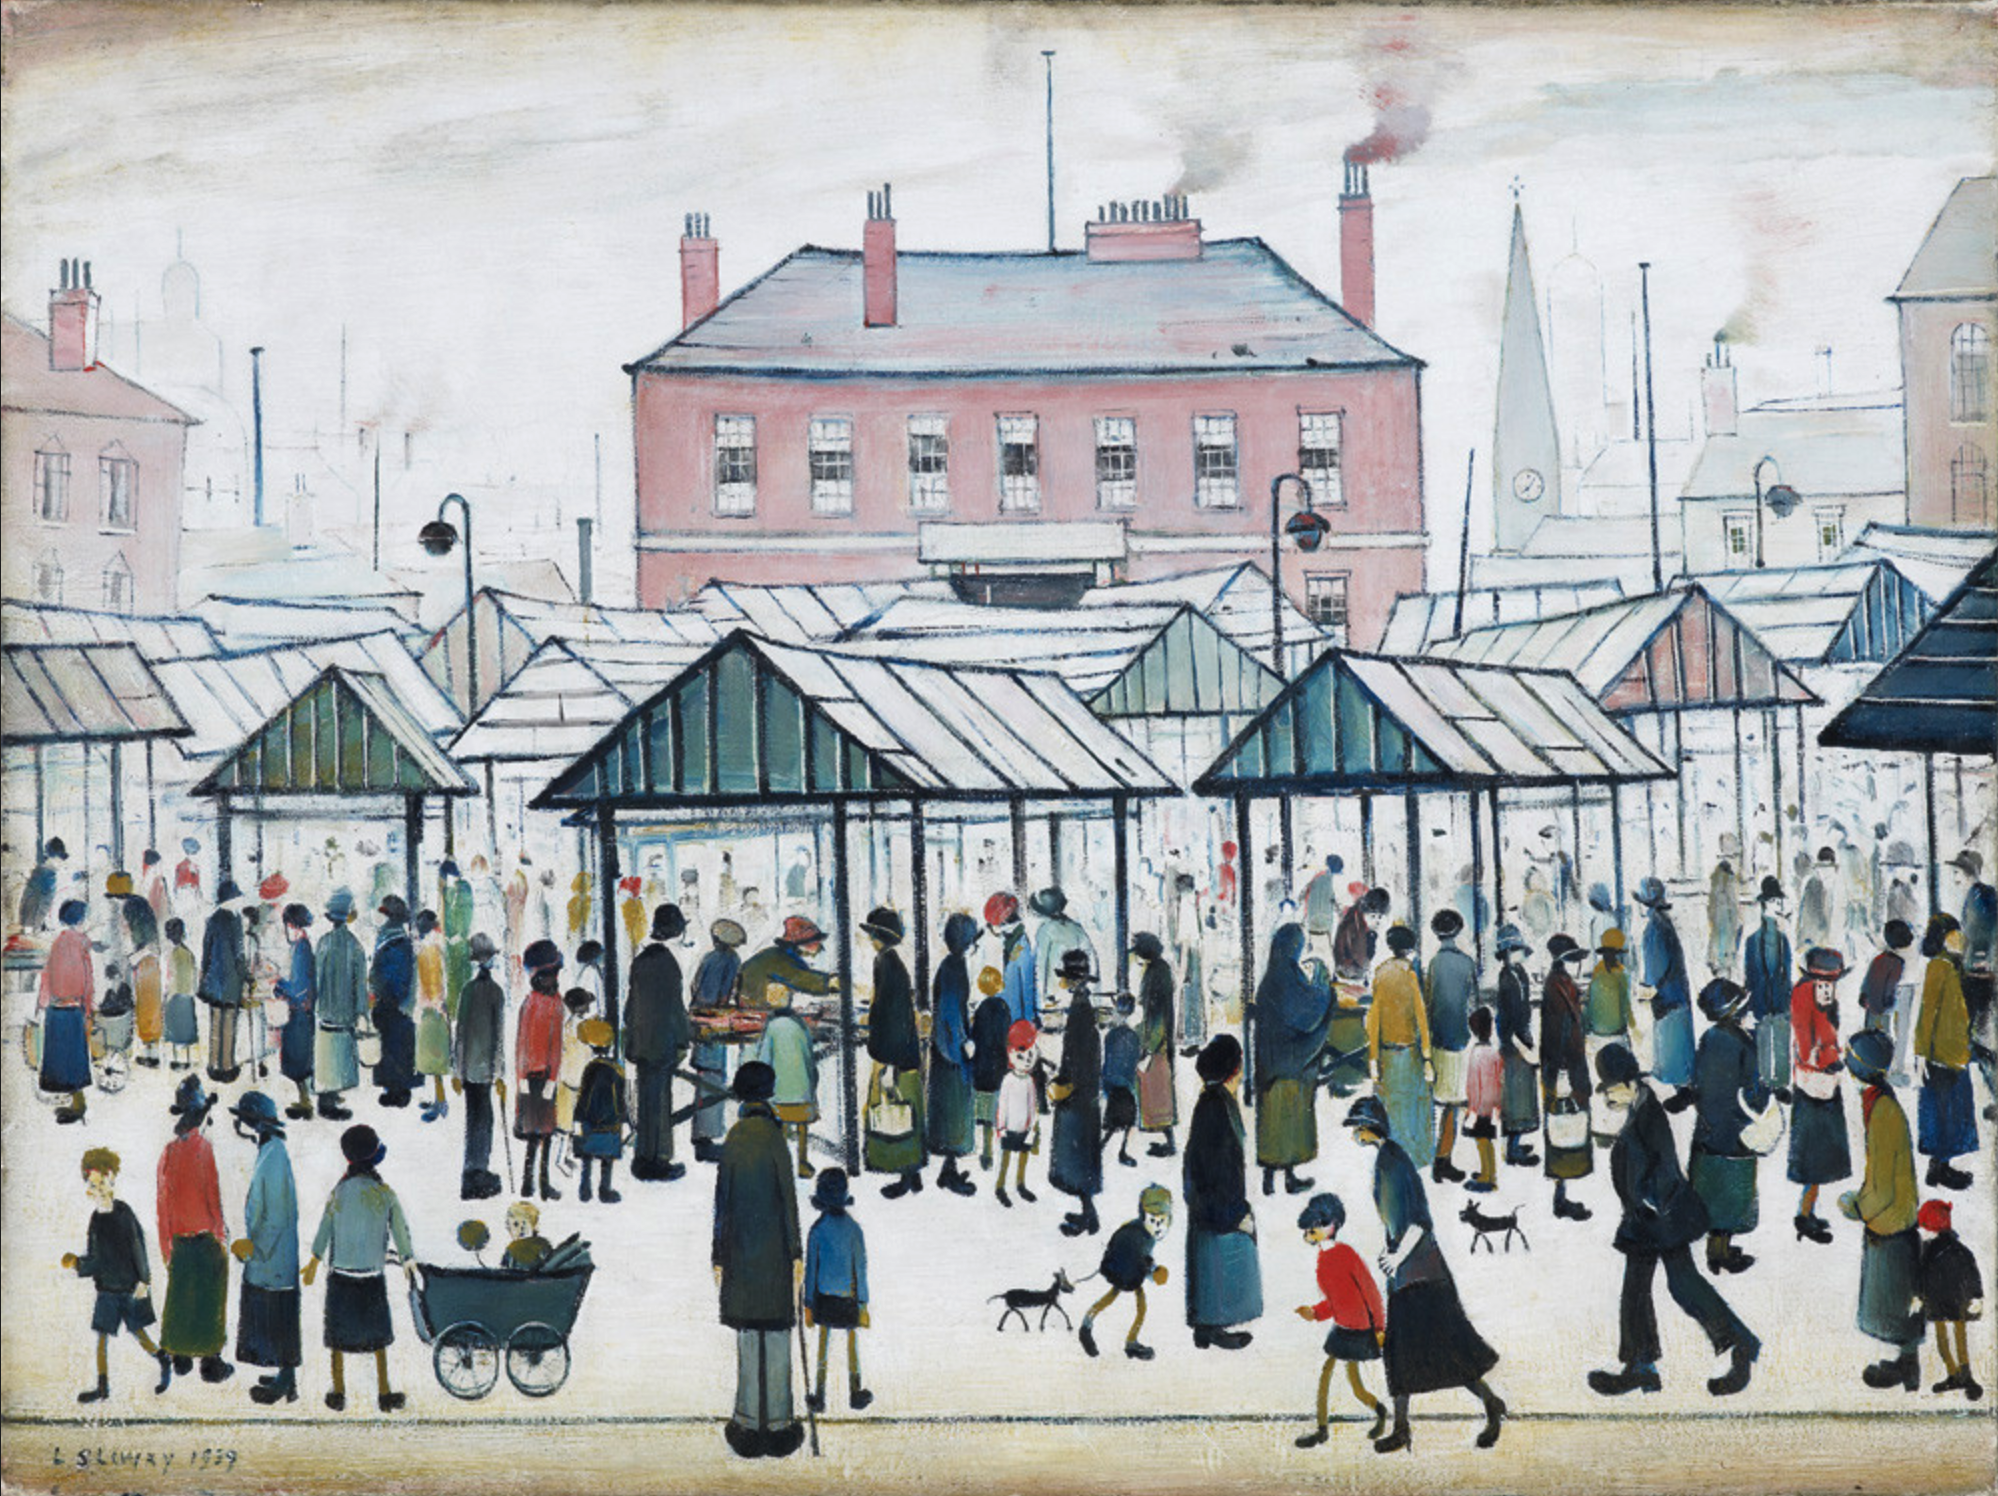 Market Scene, Northern Town (1939) by Laurence Stephen Lowry (1887 - 1976), English artist.